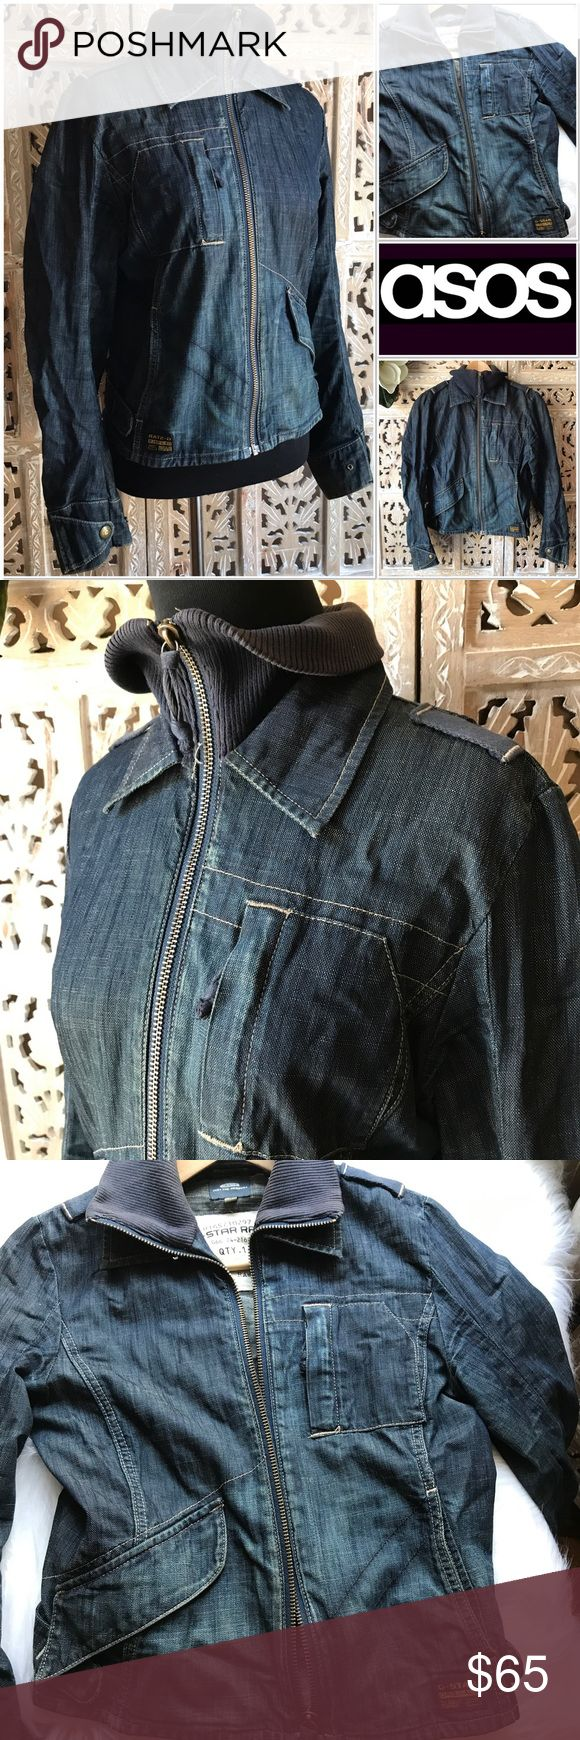 """[G-Star Raw] denim women's jacket size Small [G-Star Raw] denim women's jacket size Small. This jacket is the best denim jacket you will ever have. I wish it still fit me. I would never let it go if it did. Very good condition. It is very well made. Quality is excellent. Across chest about 17 1/2"""". Jacket length about 20"""". G-Star Jackets & Coats Jean Jackets"""